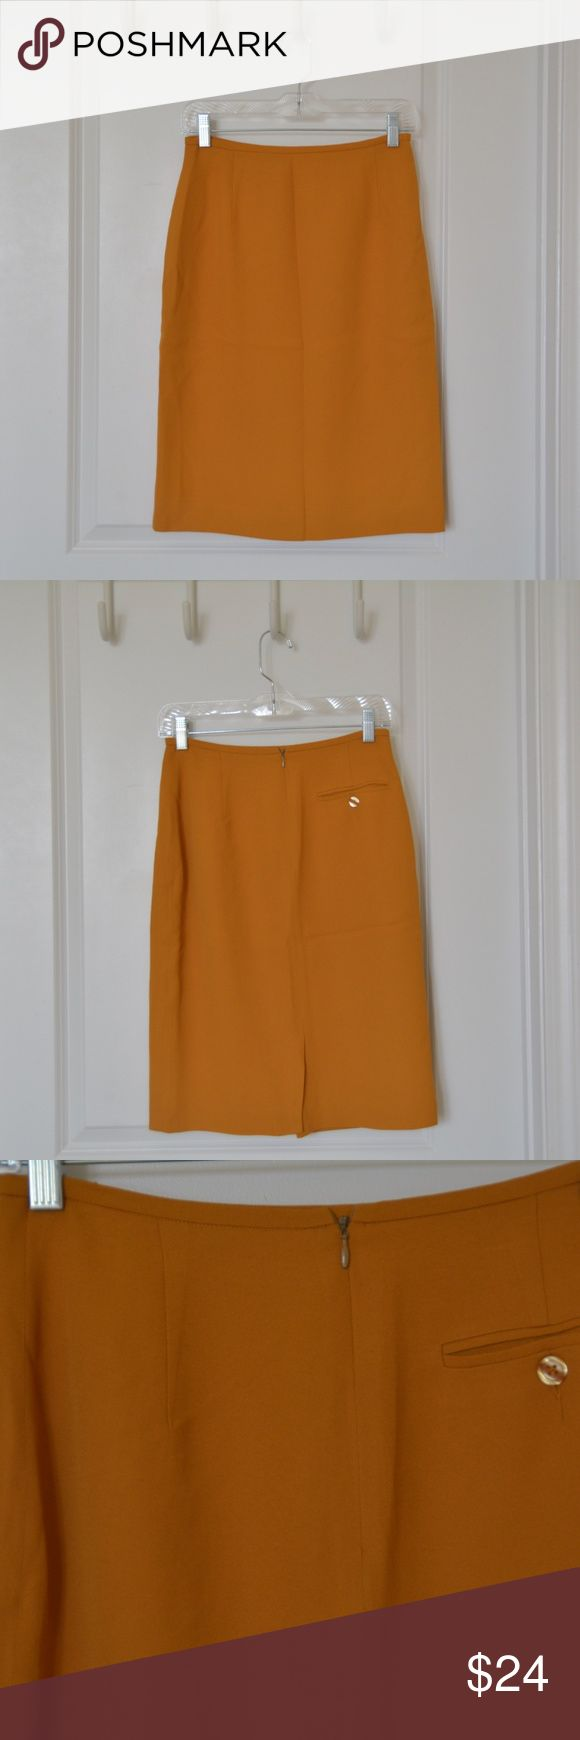 Vintage Jones New York Petite Pencil Skirt Vintage Jones New York Petite pencil skirt in polyester blend material. Golden mustard color. Listed as a size 8, fits like a 2. Even as a vintage item, it is in like new condition. Small welt buttoned pocket in back, see photo. Jones New York Skirts Pencil